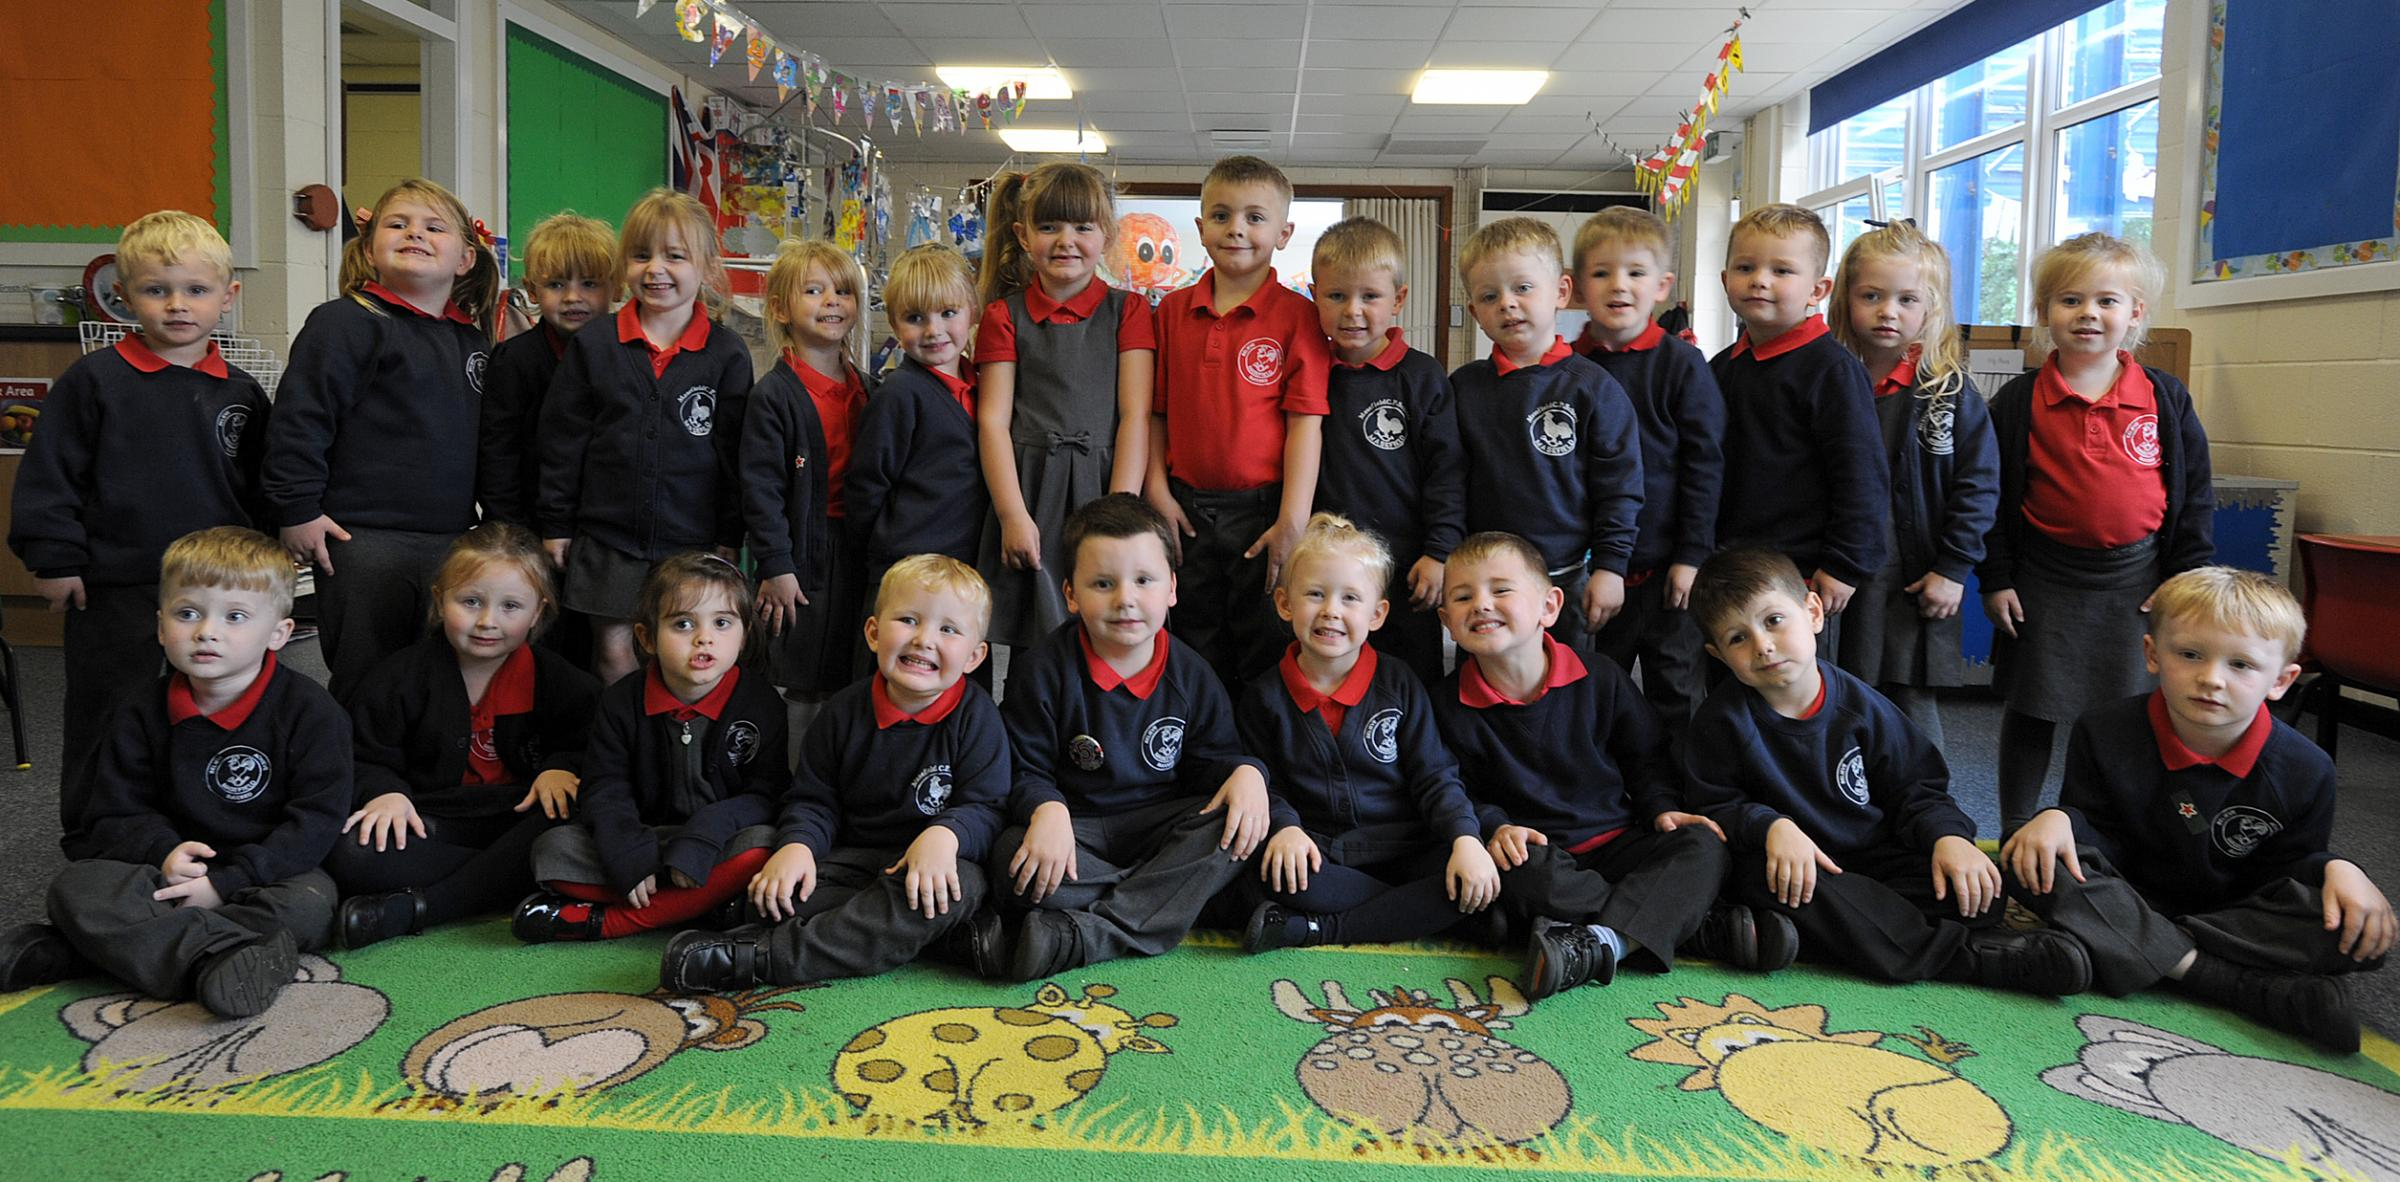 CLASS: Reception pupils at Masefield Primary School